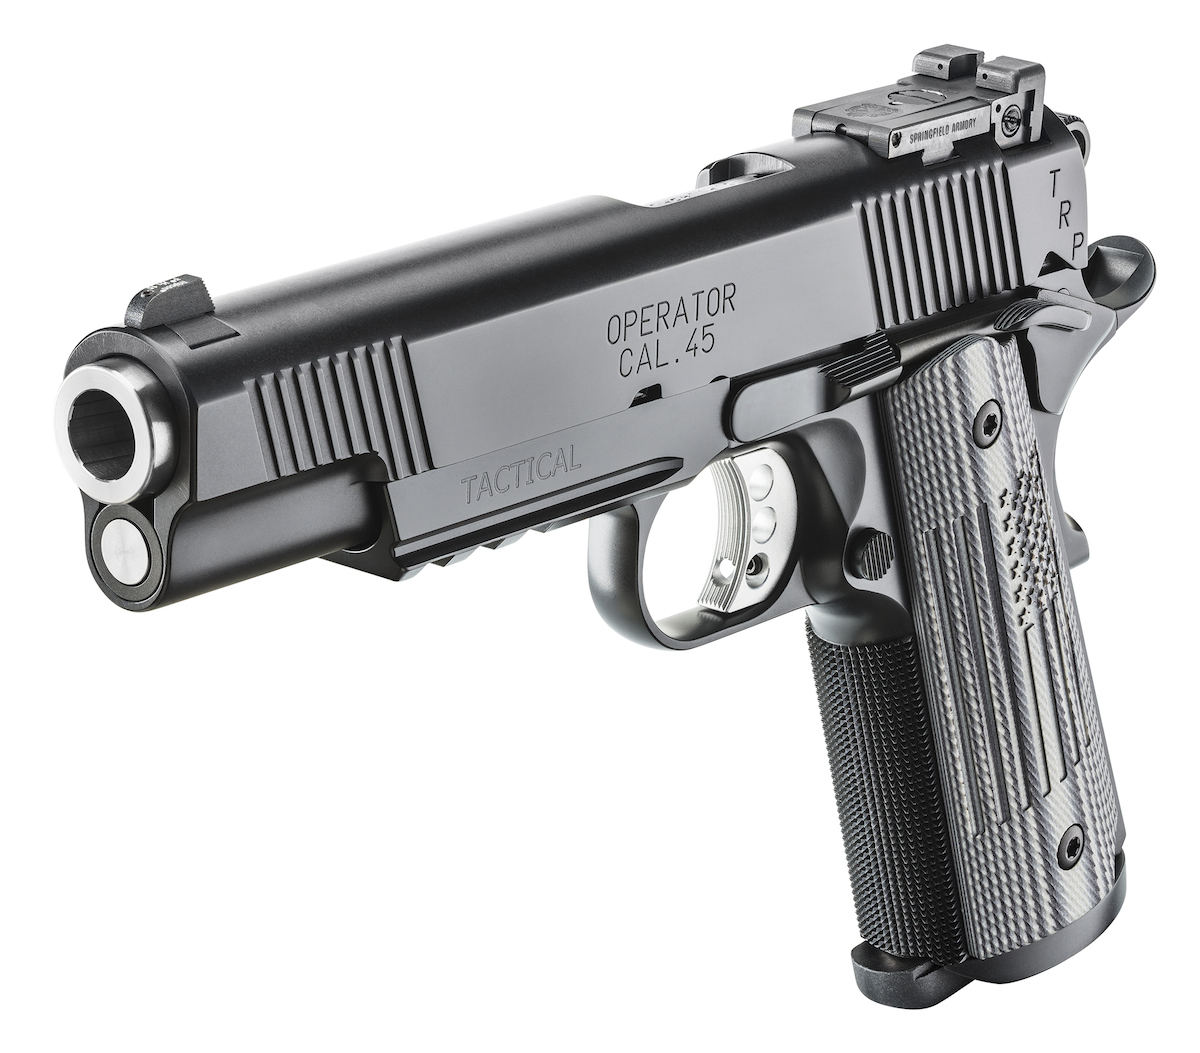 The pistol has all the features you would want (and expect) on a high-end 1911 pistol like this.